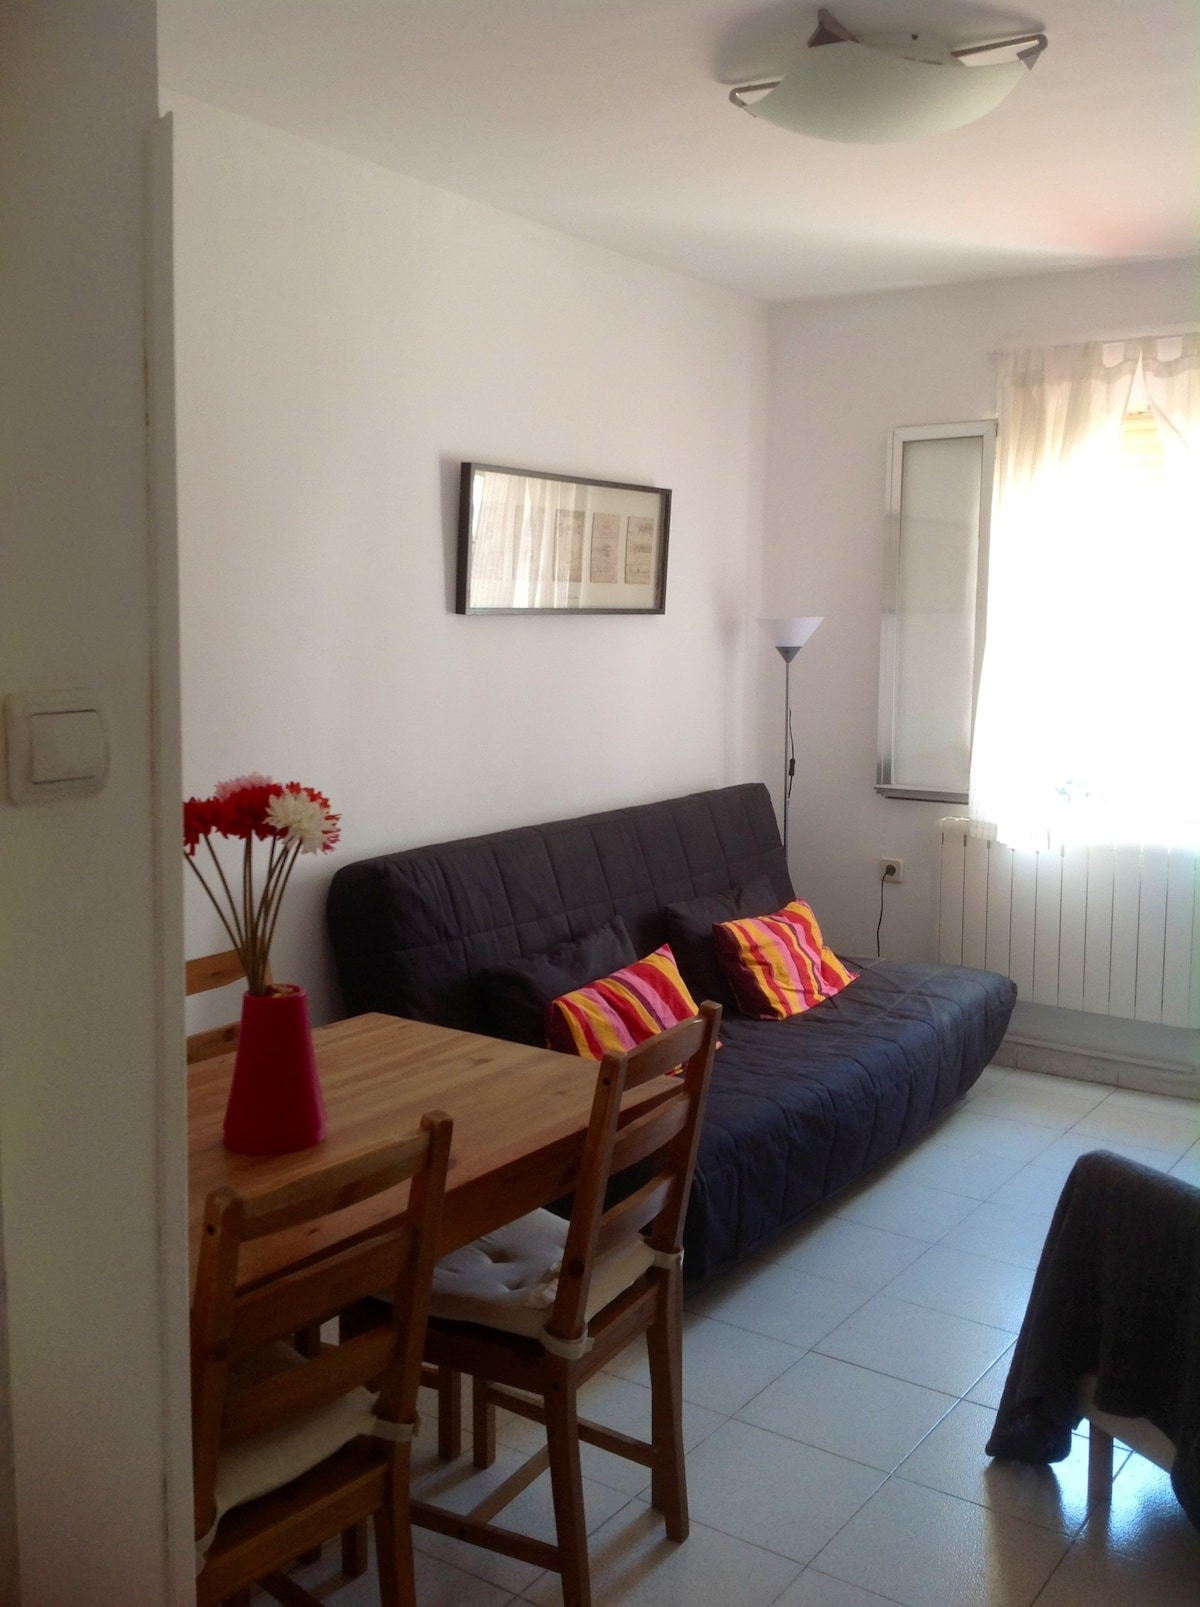 Refurbished Flat for 4/6 in central Madrid!